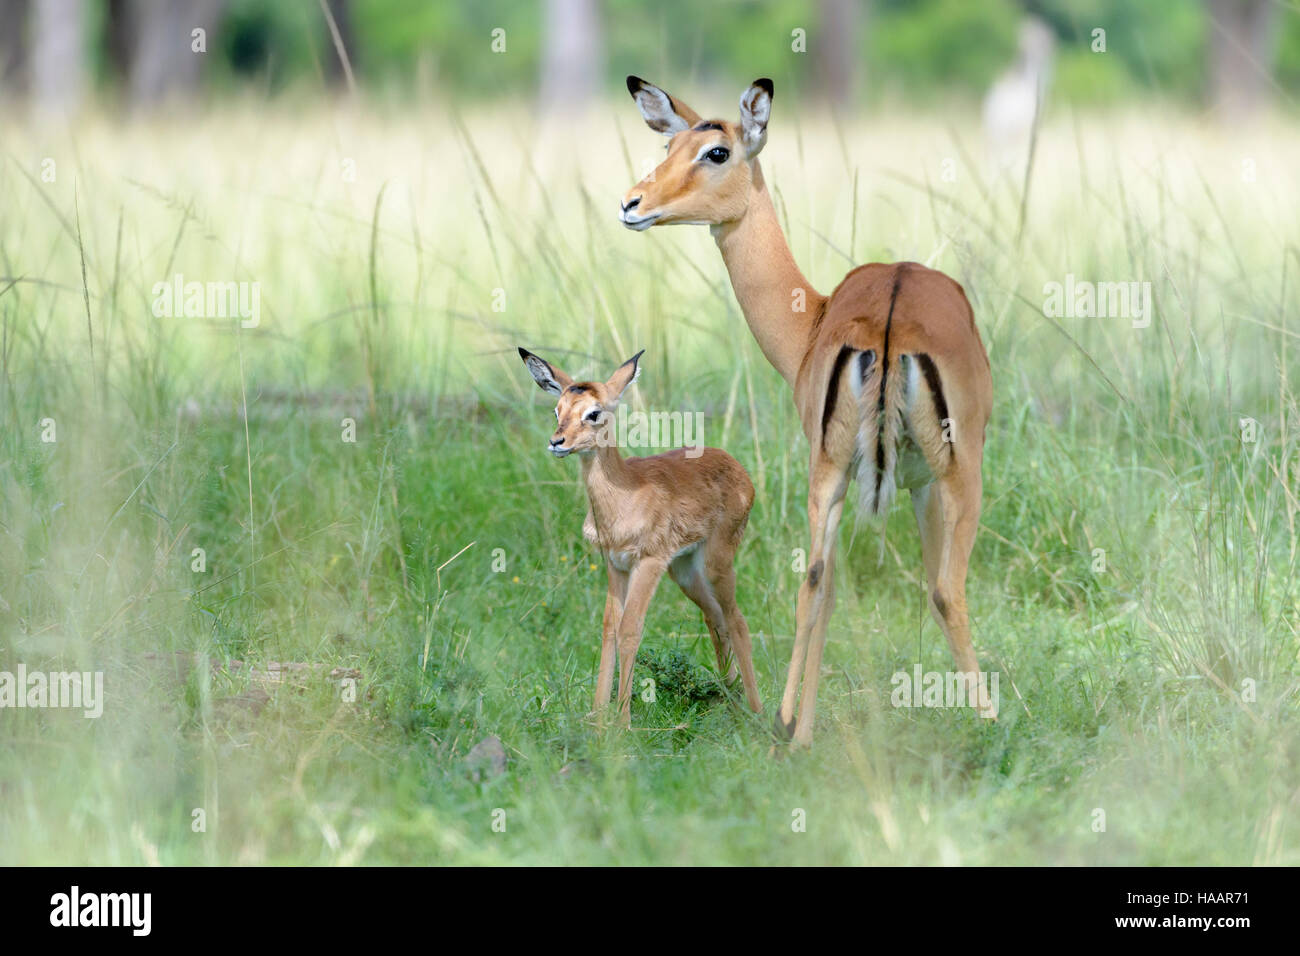 Impala (Aepyceros melampus) mother and new born infant, baby, Maasai Mara National Reserve, Kenya - Stock Image